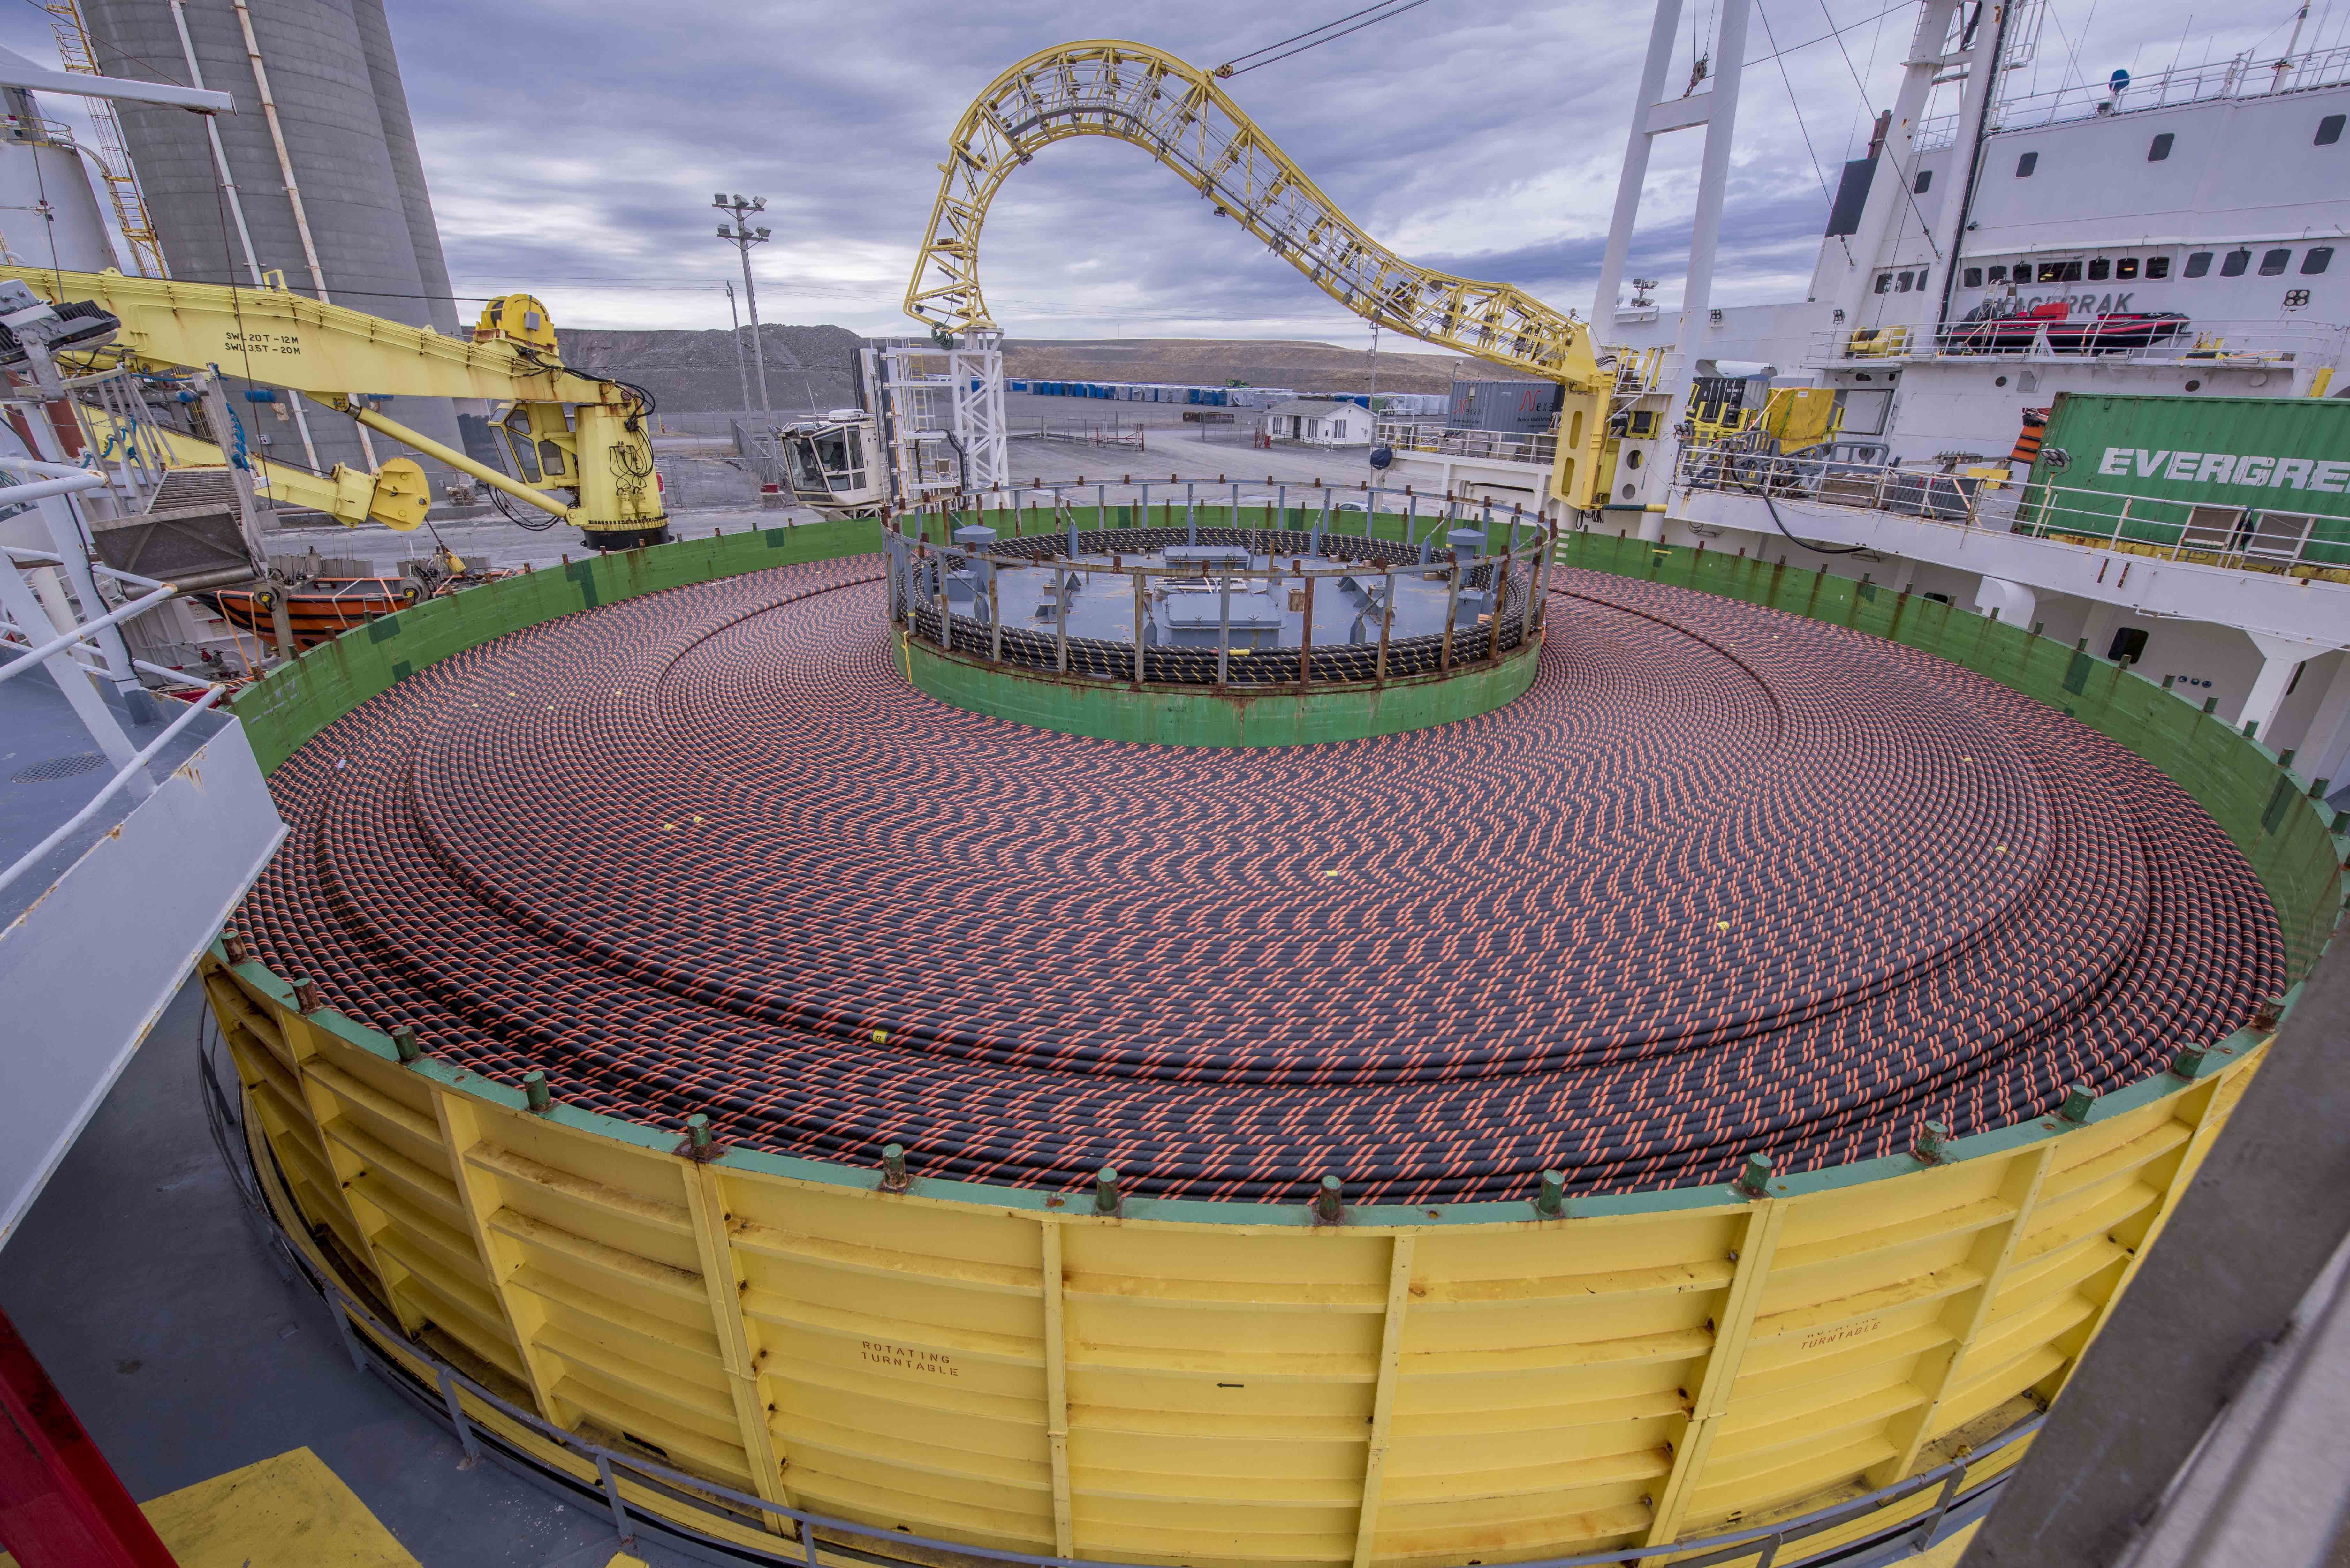 The submarine cable shown is approximately 170 km in length and weighs 5,500 tonnes. Combined, both cables for the Maritime Link Project weigh more than the Eiffel Tower.(Photo: Business Wire)